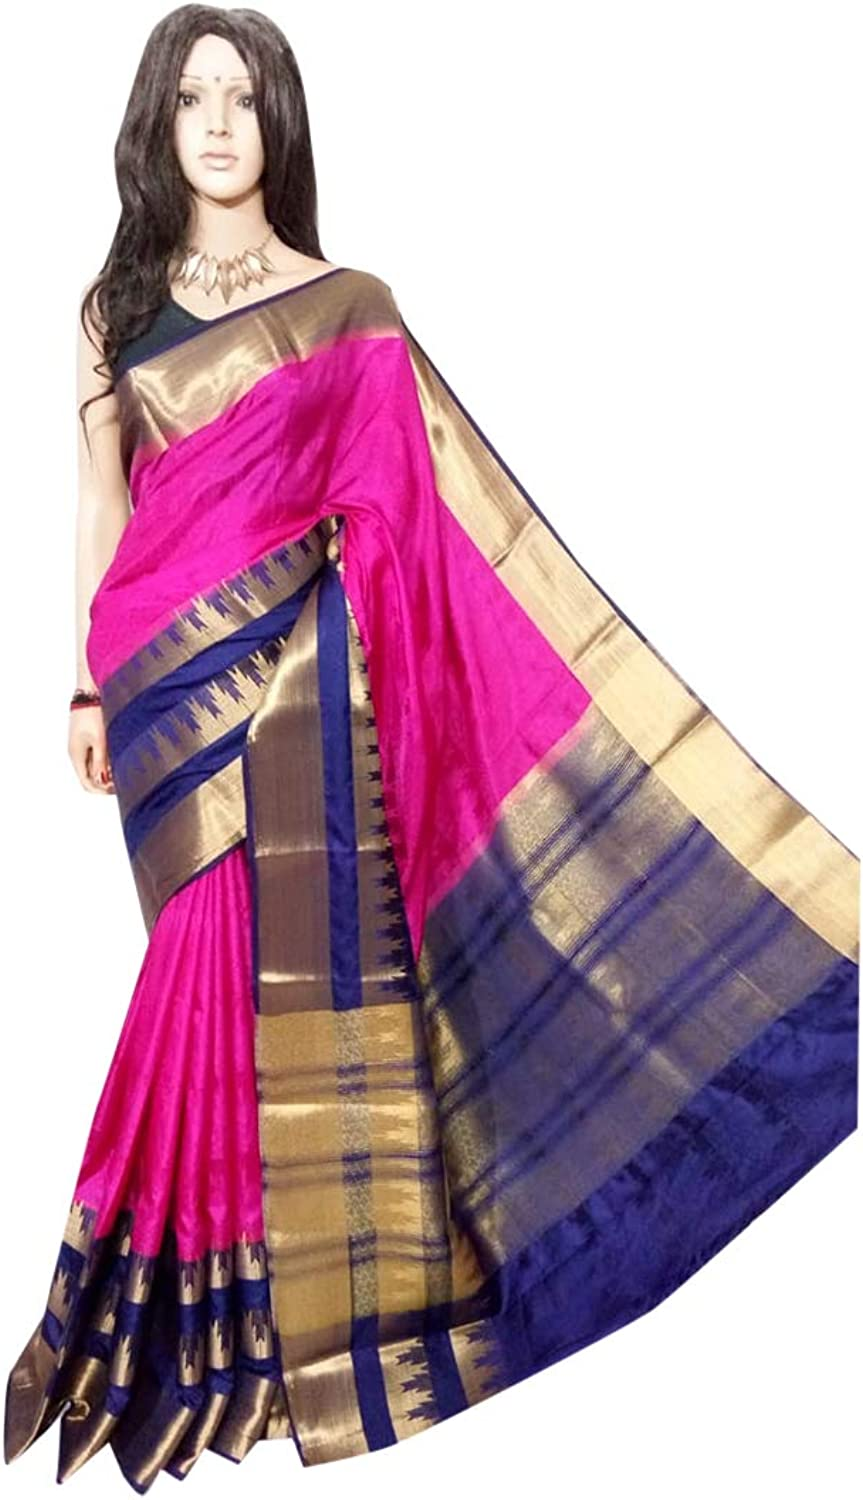 Indian Ethnic Big Border Silk Saree Evening Light To Wear Party Sari 121a